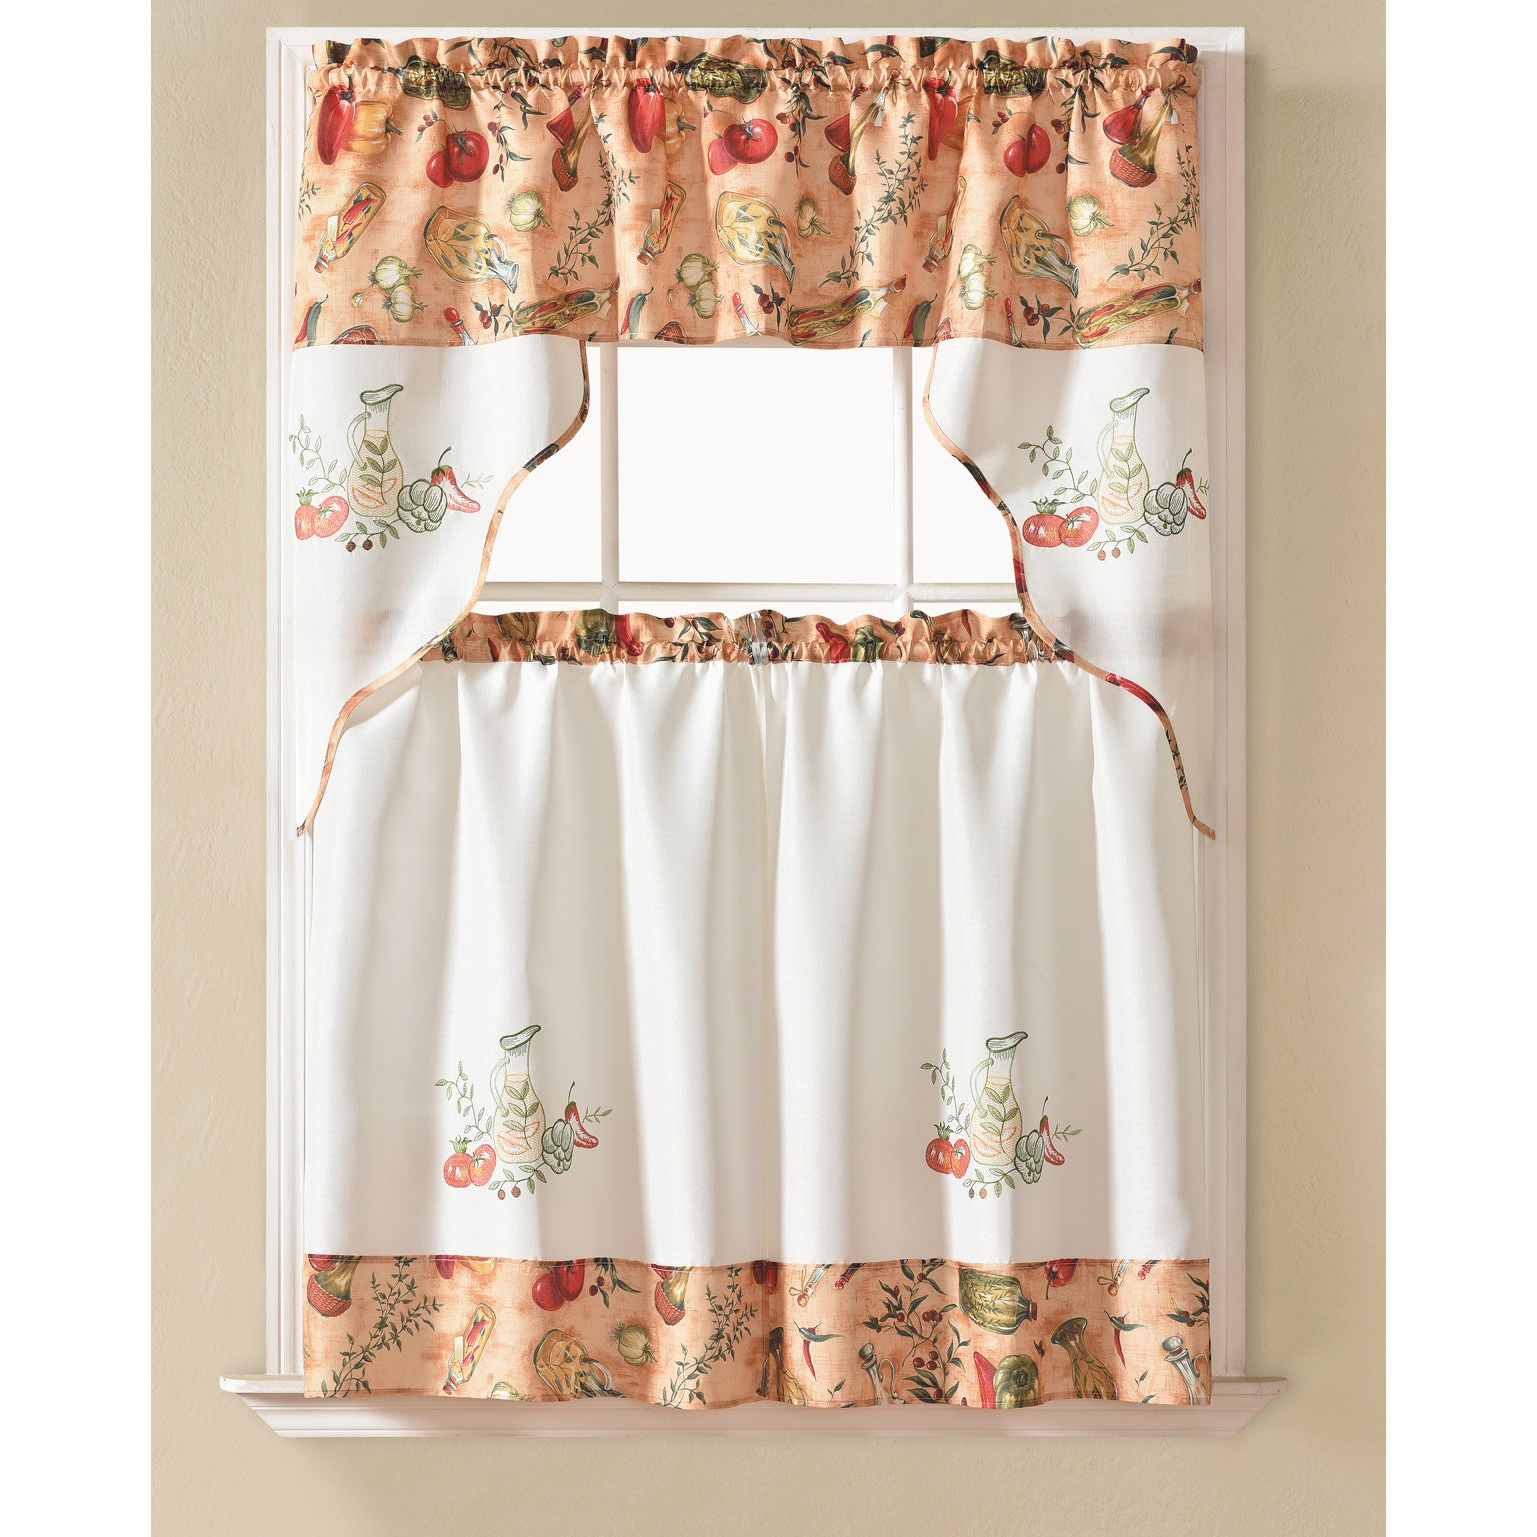 Preferred Rt Designers Collection Urban Embroidered Tier And Valance Kitchen Curtain Tier Set In Delicious Apples Kitchen Curtain Tier And Valance Sets (View 9 of 20)